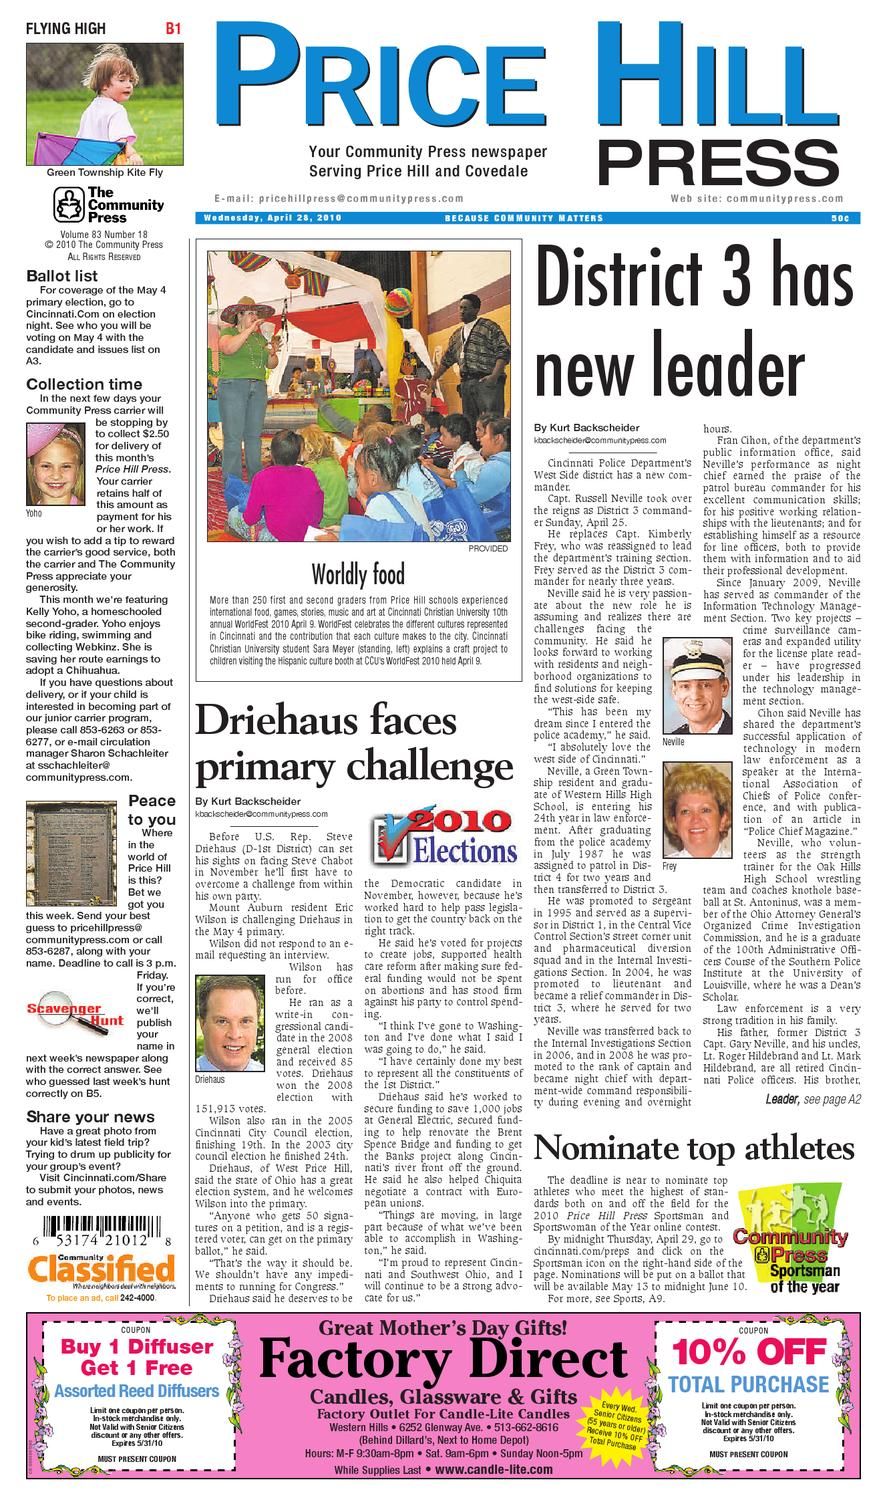 price-hill-press-042810 by Enquirer Media - issuu 3d71fb873